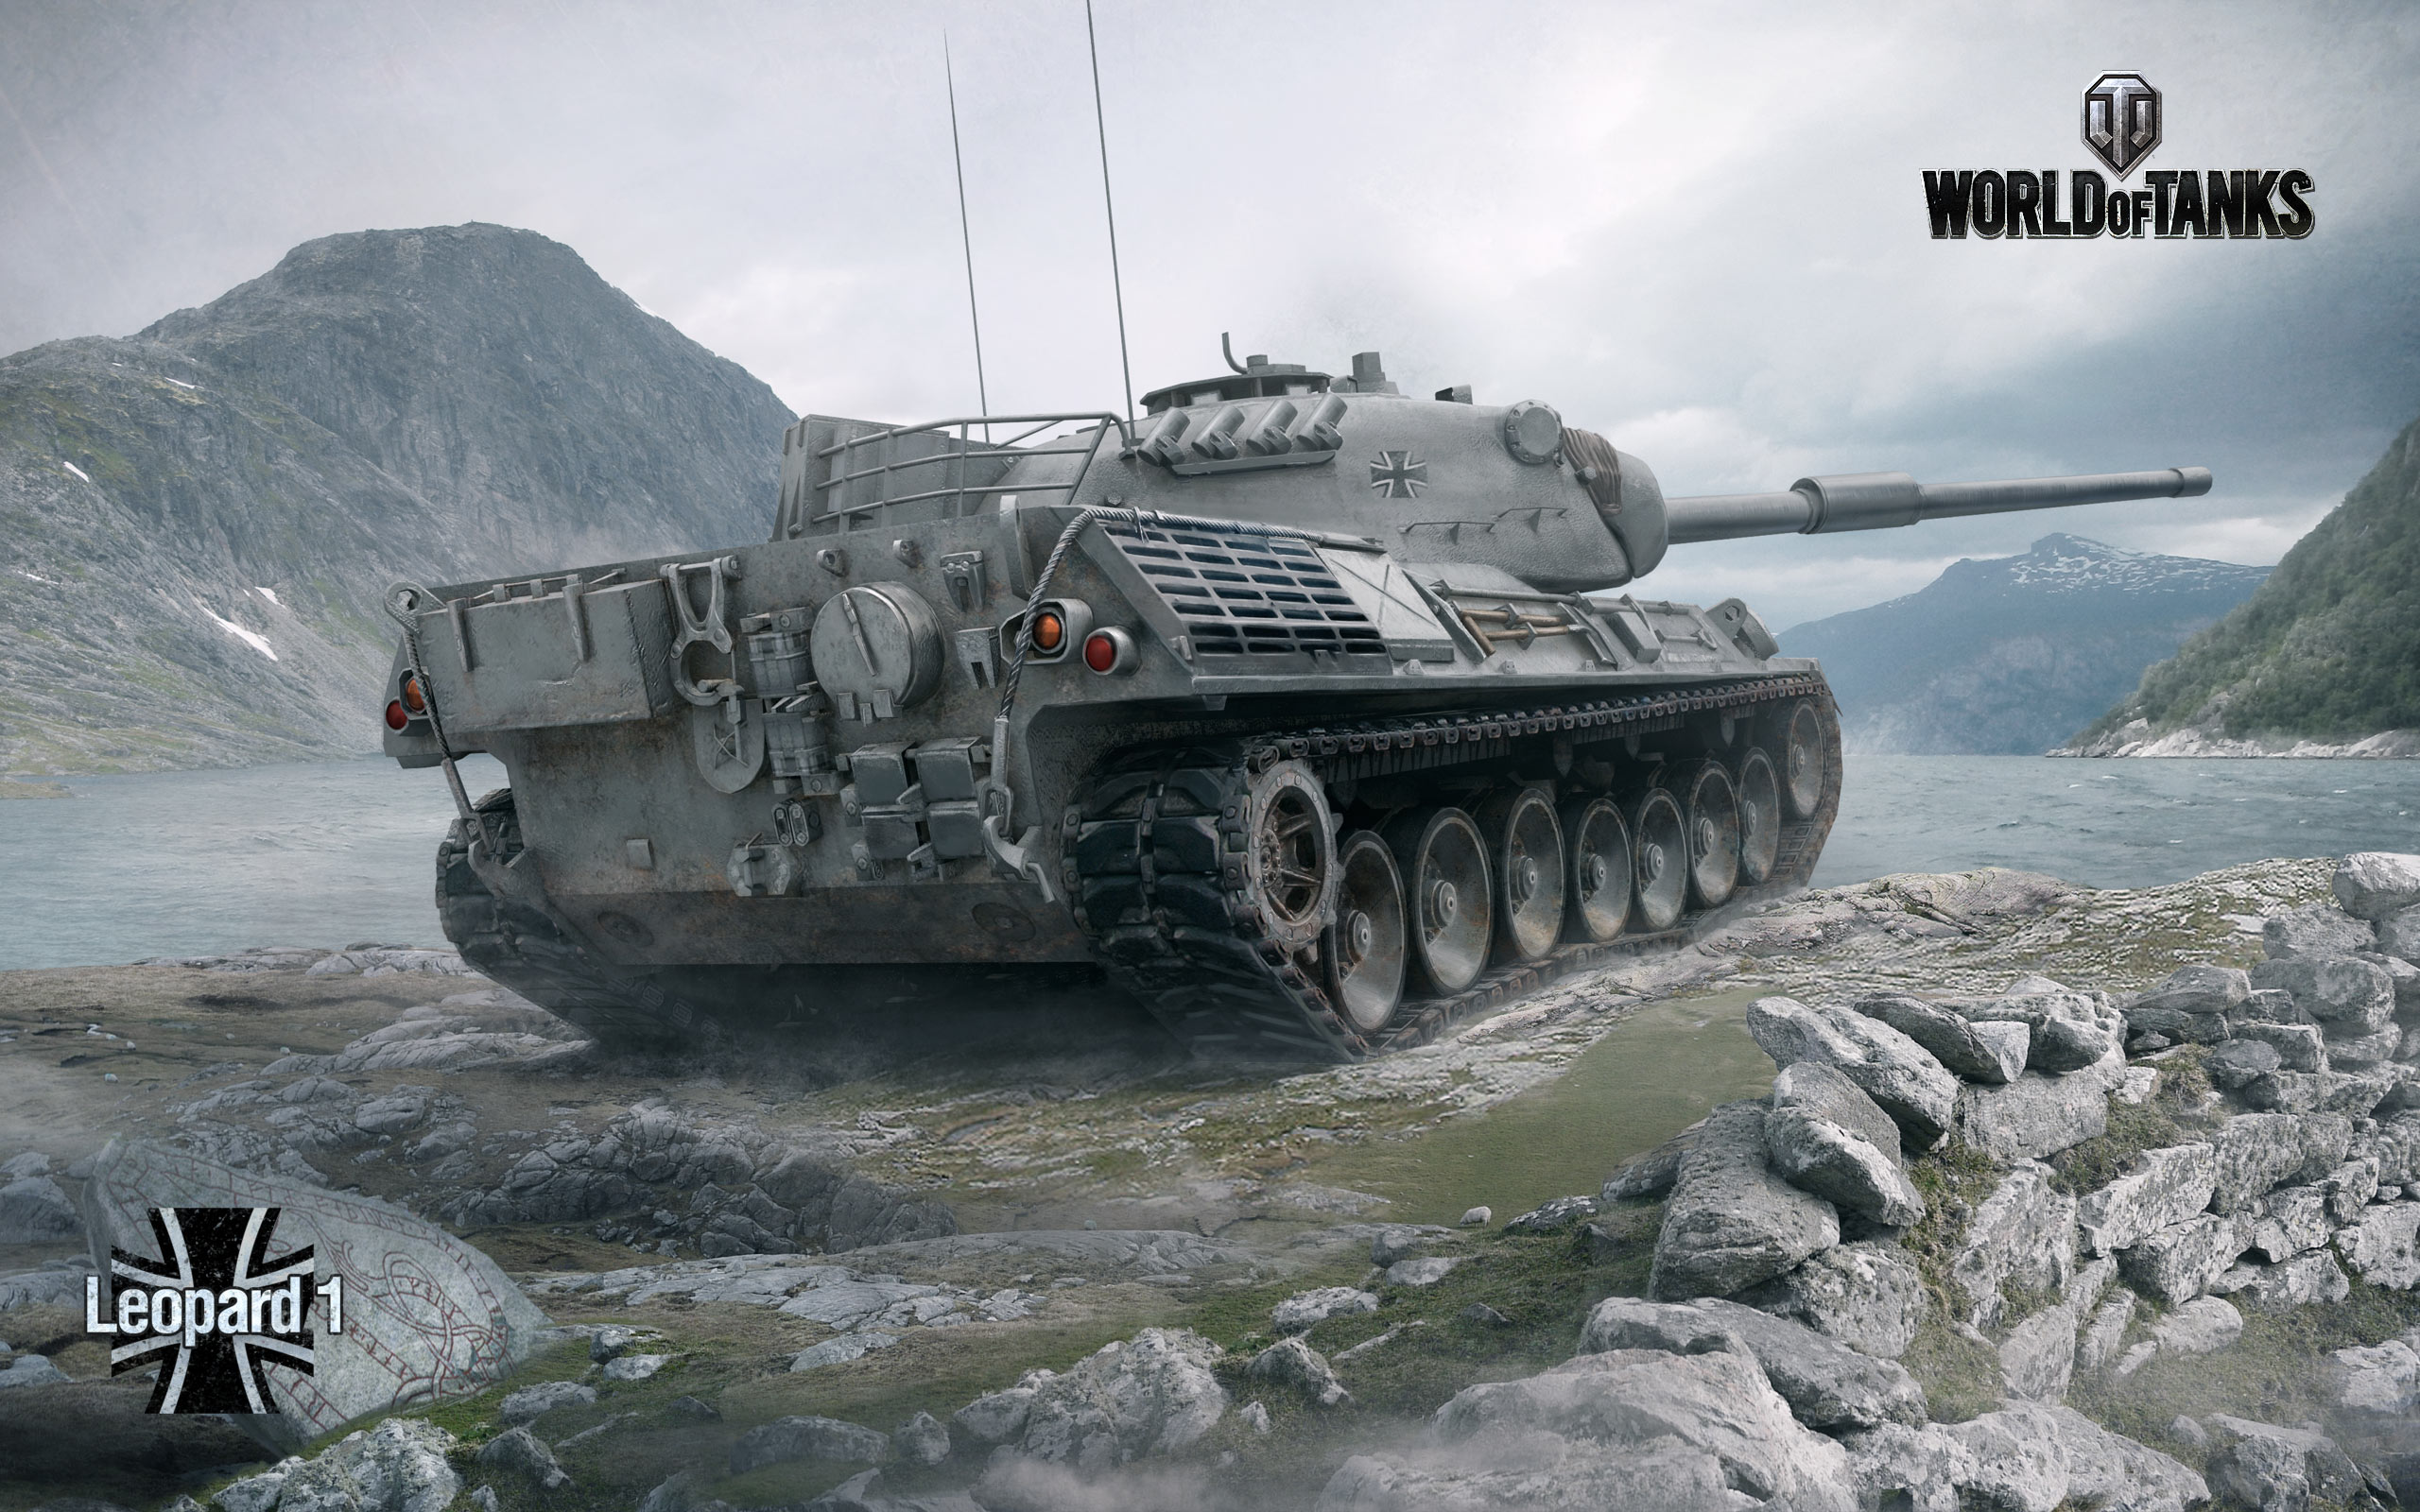 leopard 1 world of tanks wallpapers | wallpapers hd